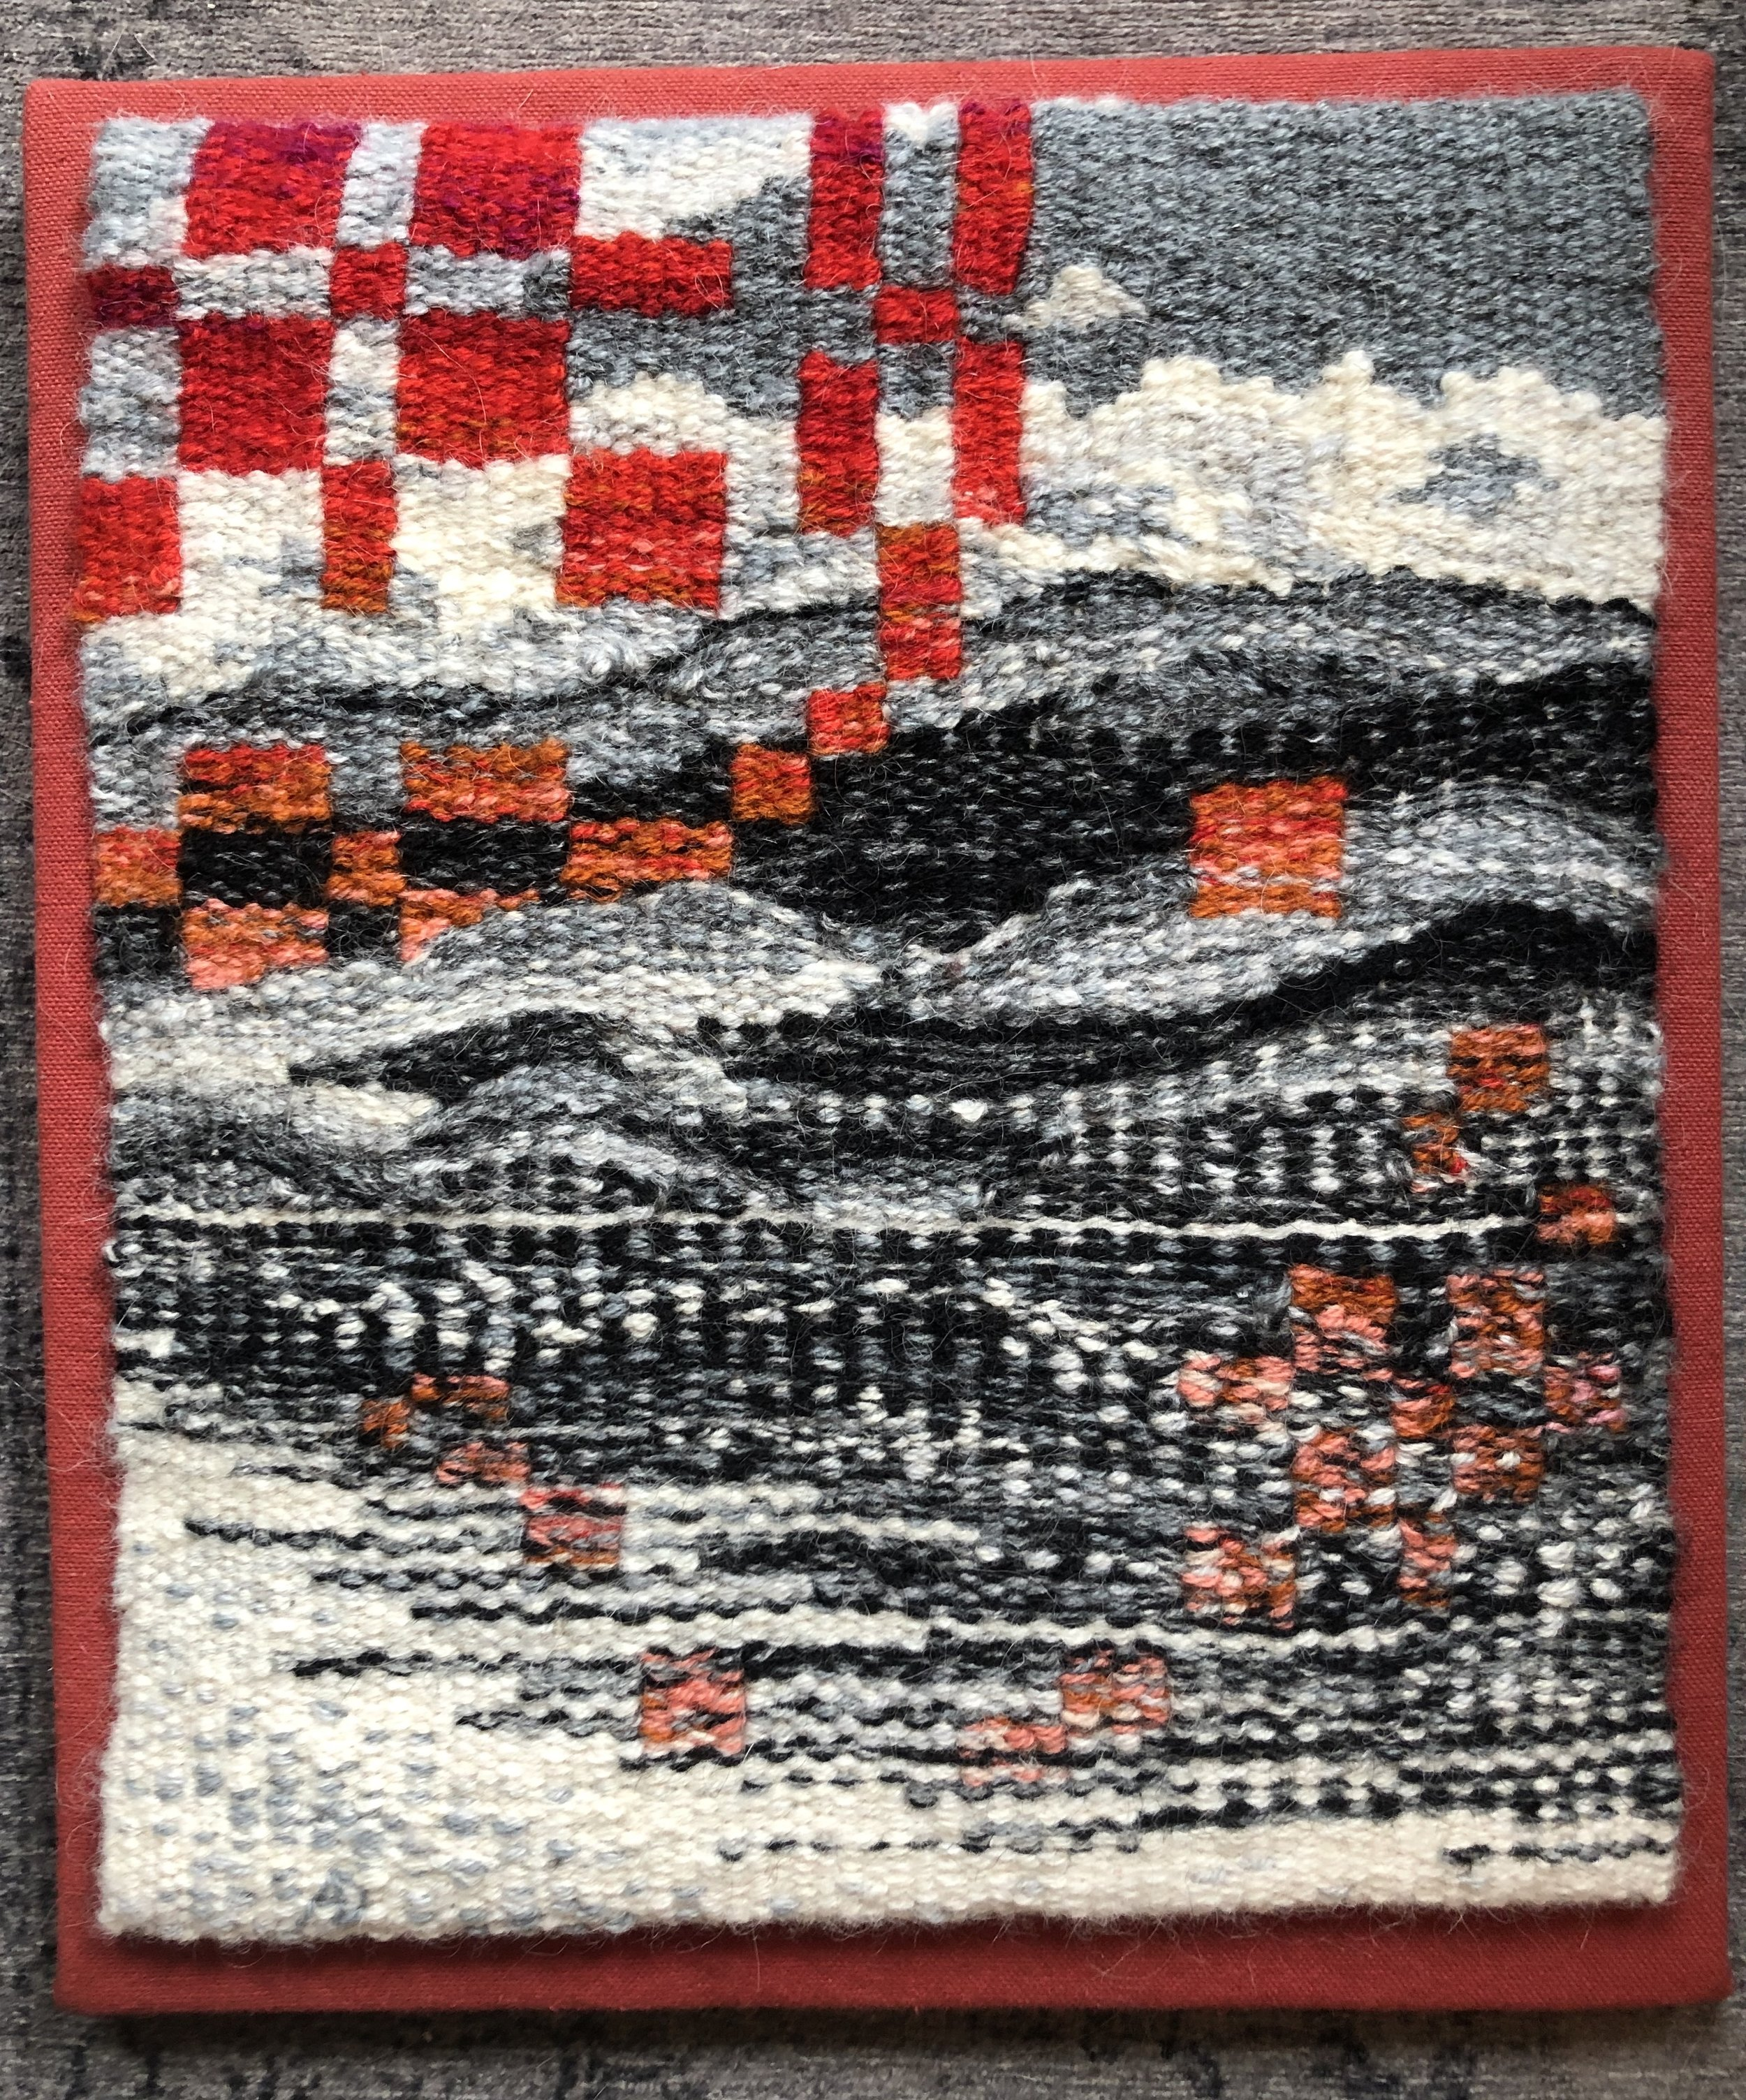 """Roses, 2019. Cotton warp and wool weft. 10.5"""" x 13""""."""